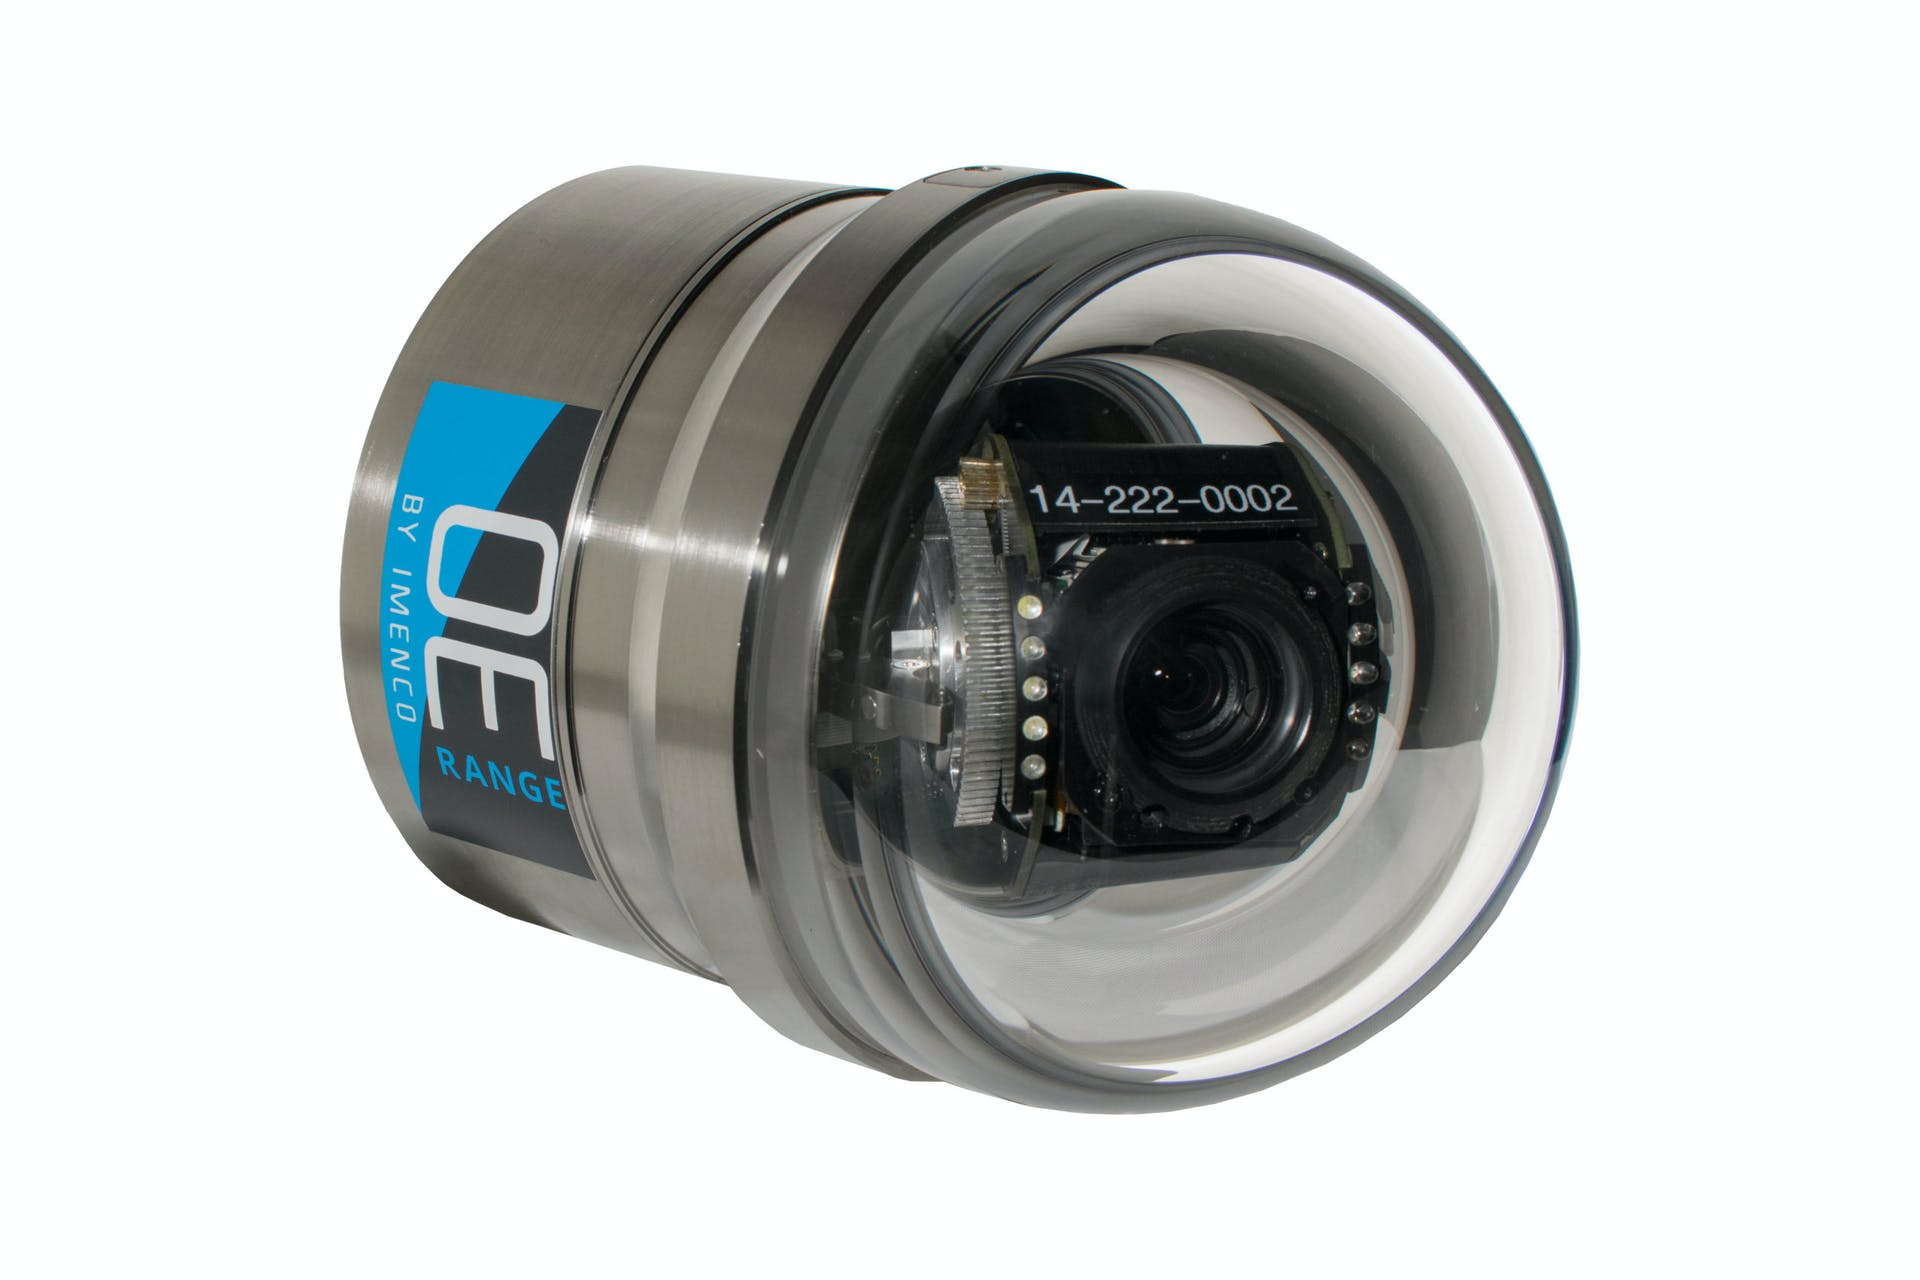 OE14-222-223 Colour Zoom, Rotate and Tilt (ZRAT) Camera